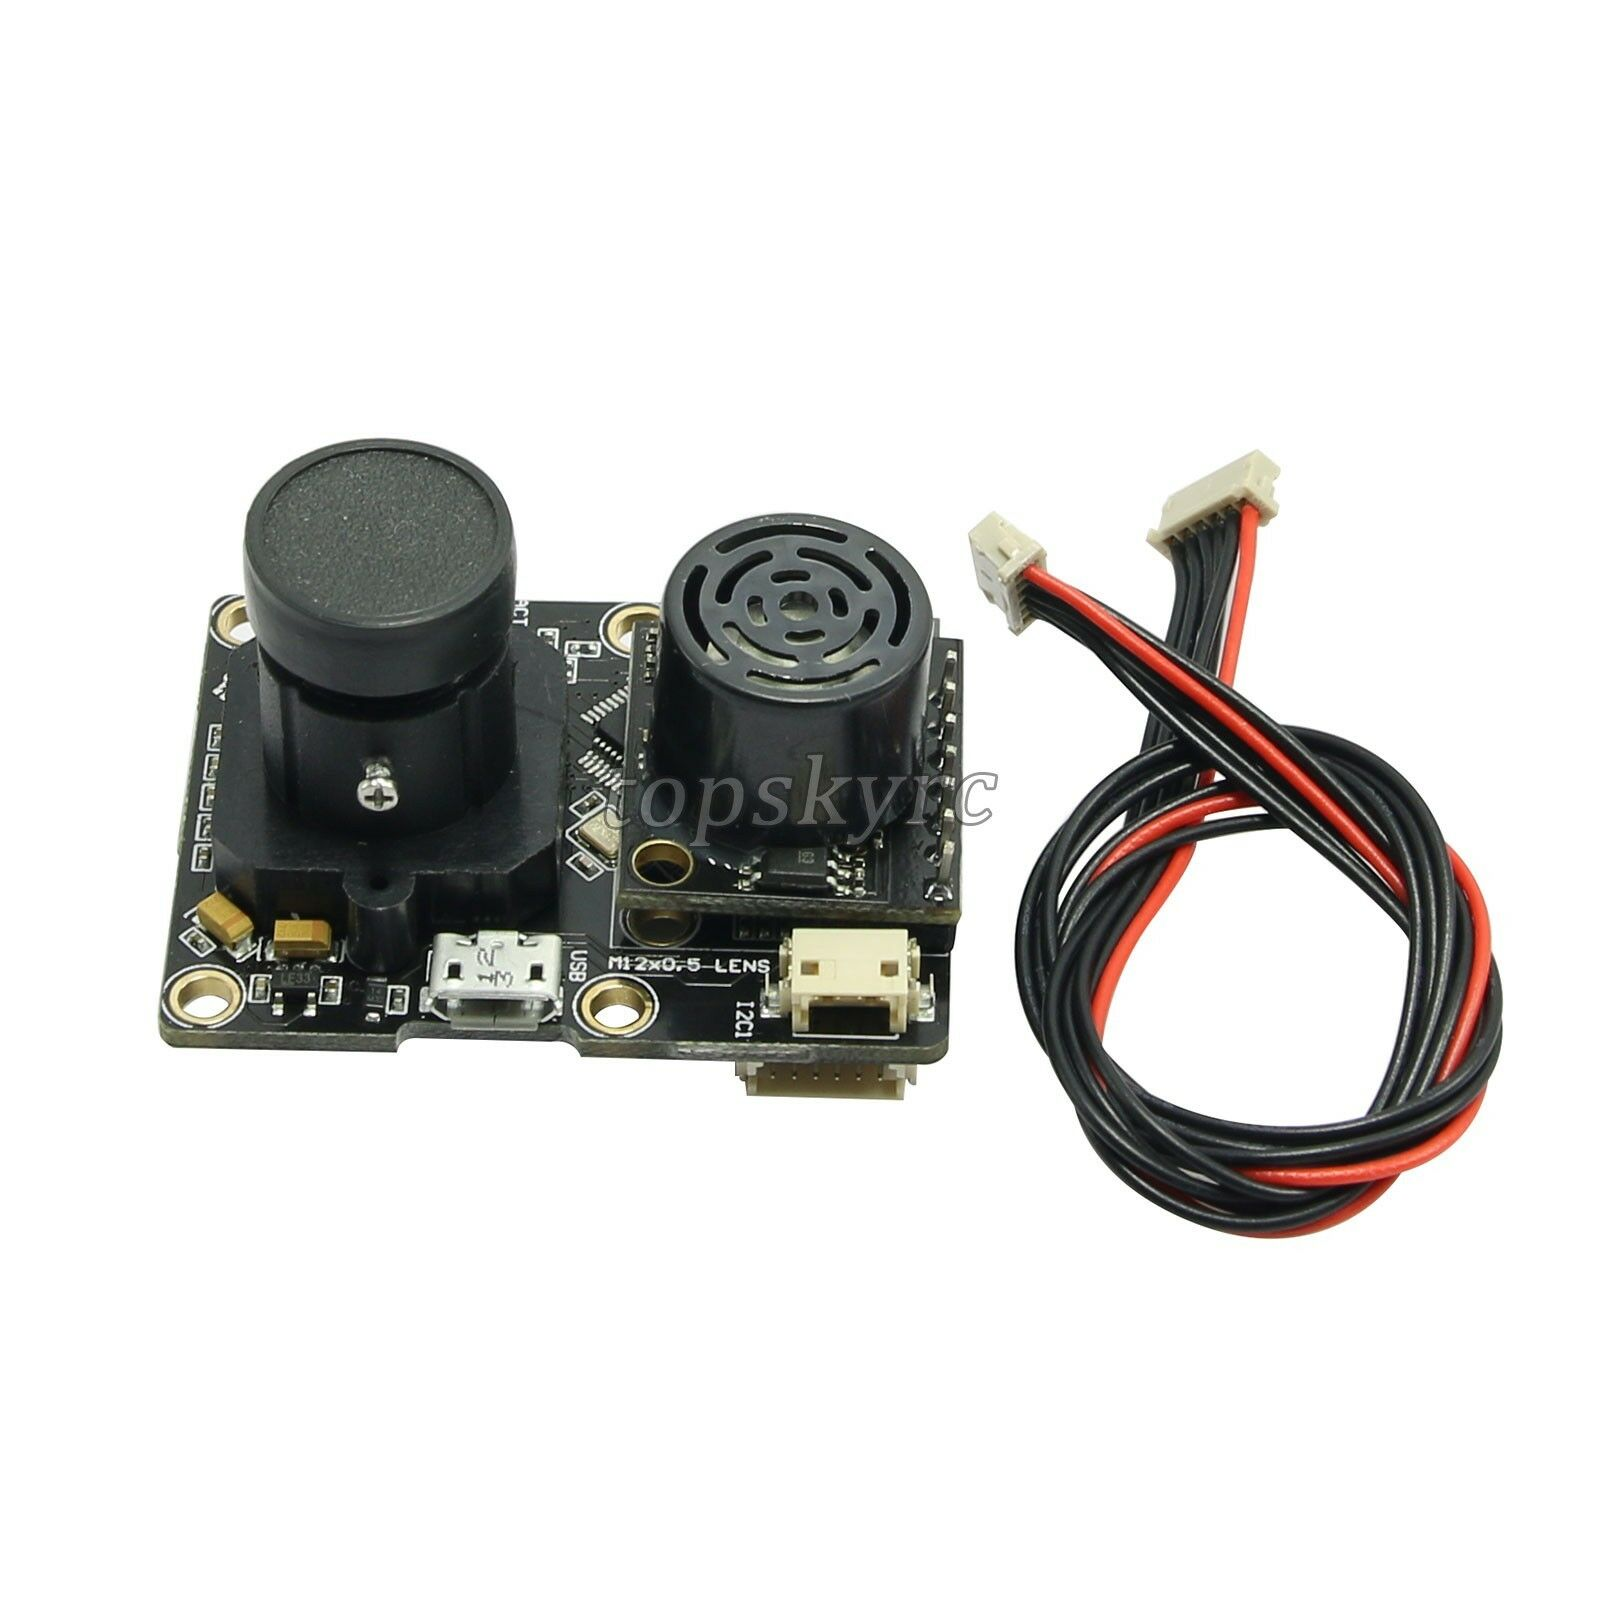 PX4FLOW V1.3.1 Optical Flow Sensor Smart Camera MB1043 f PIXHAWK Flight Control